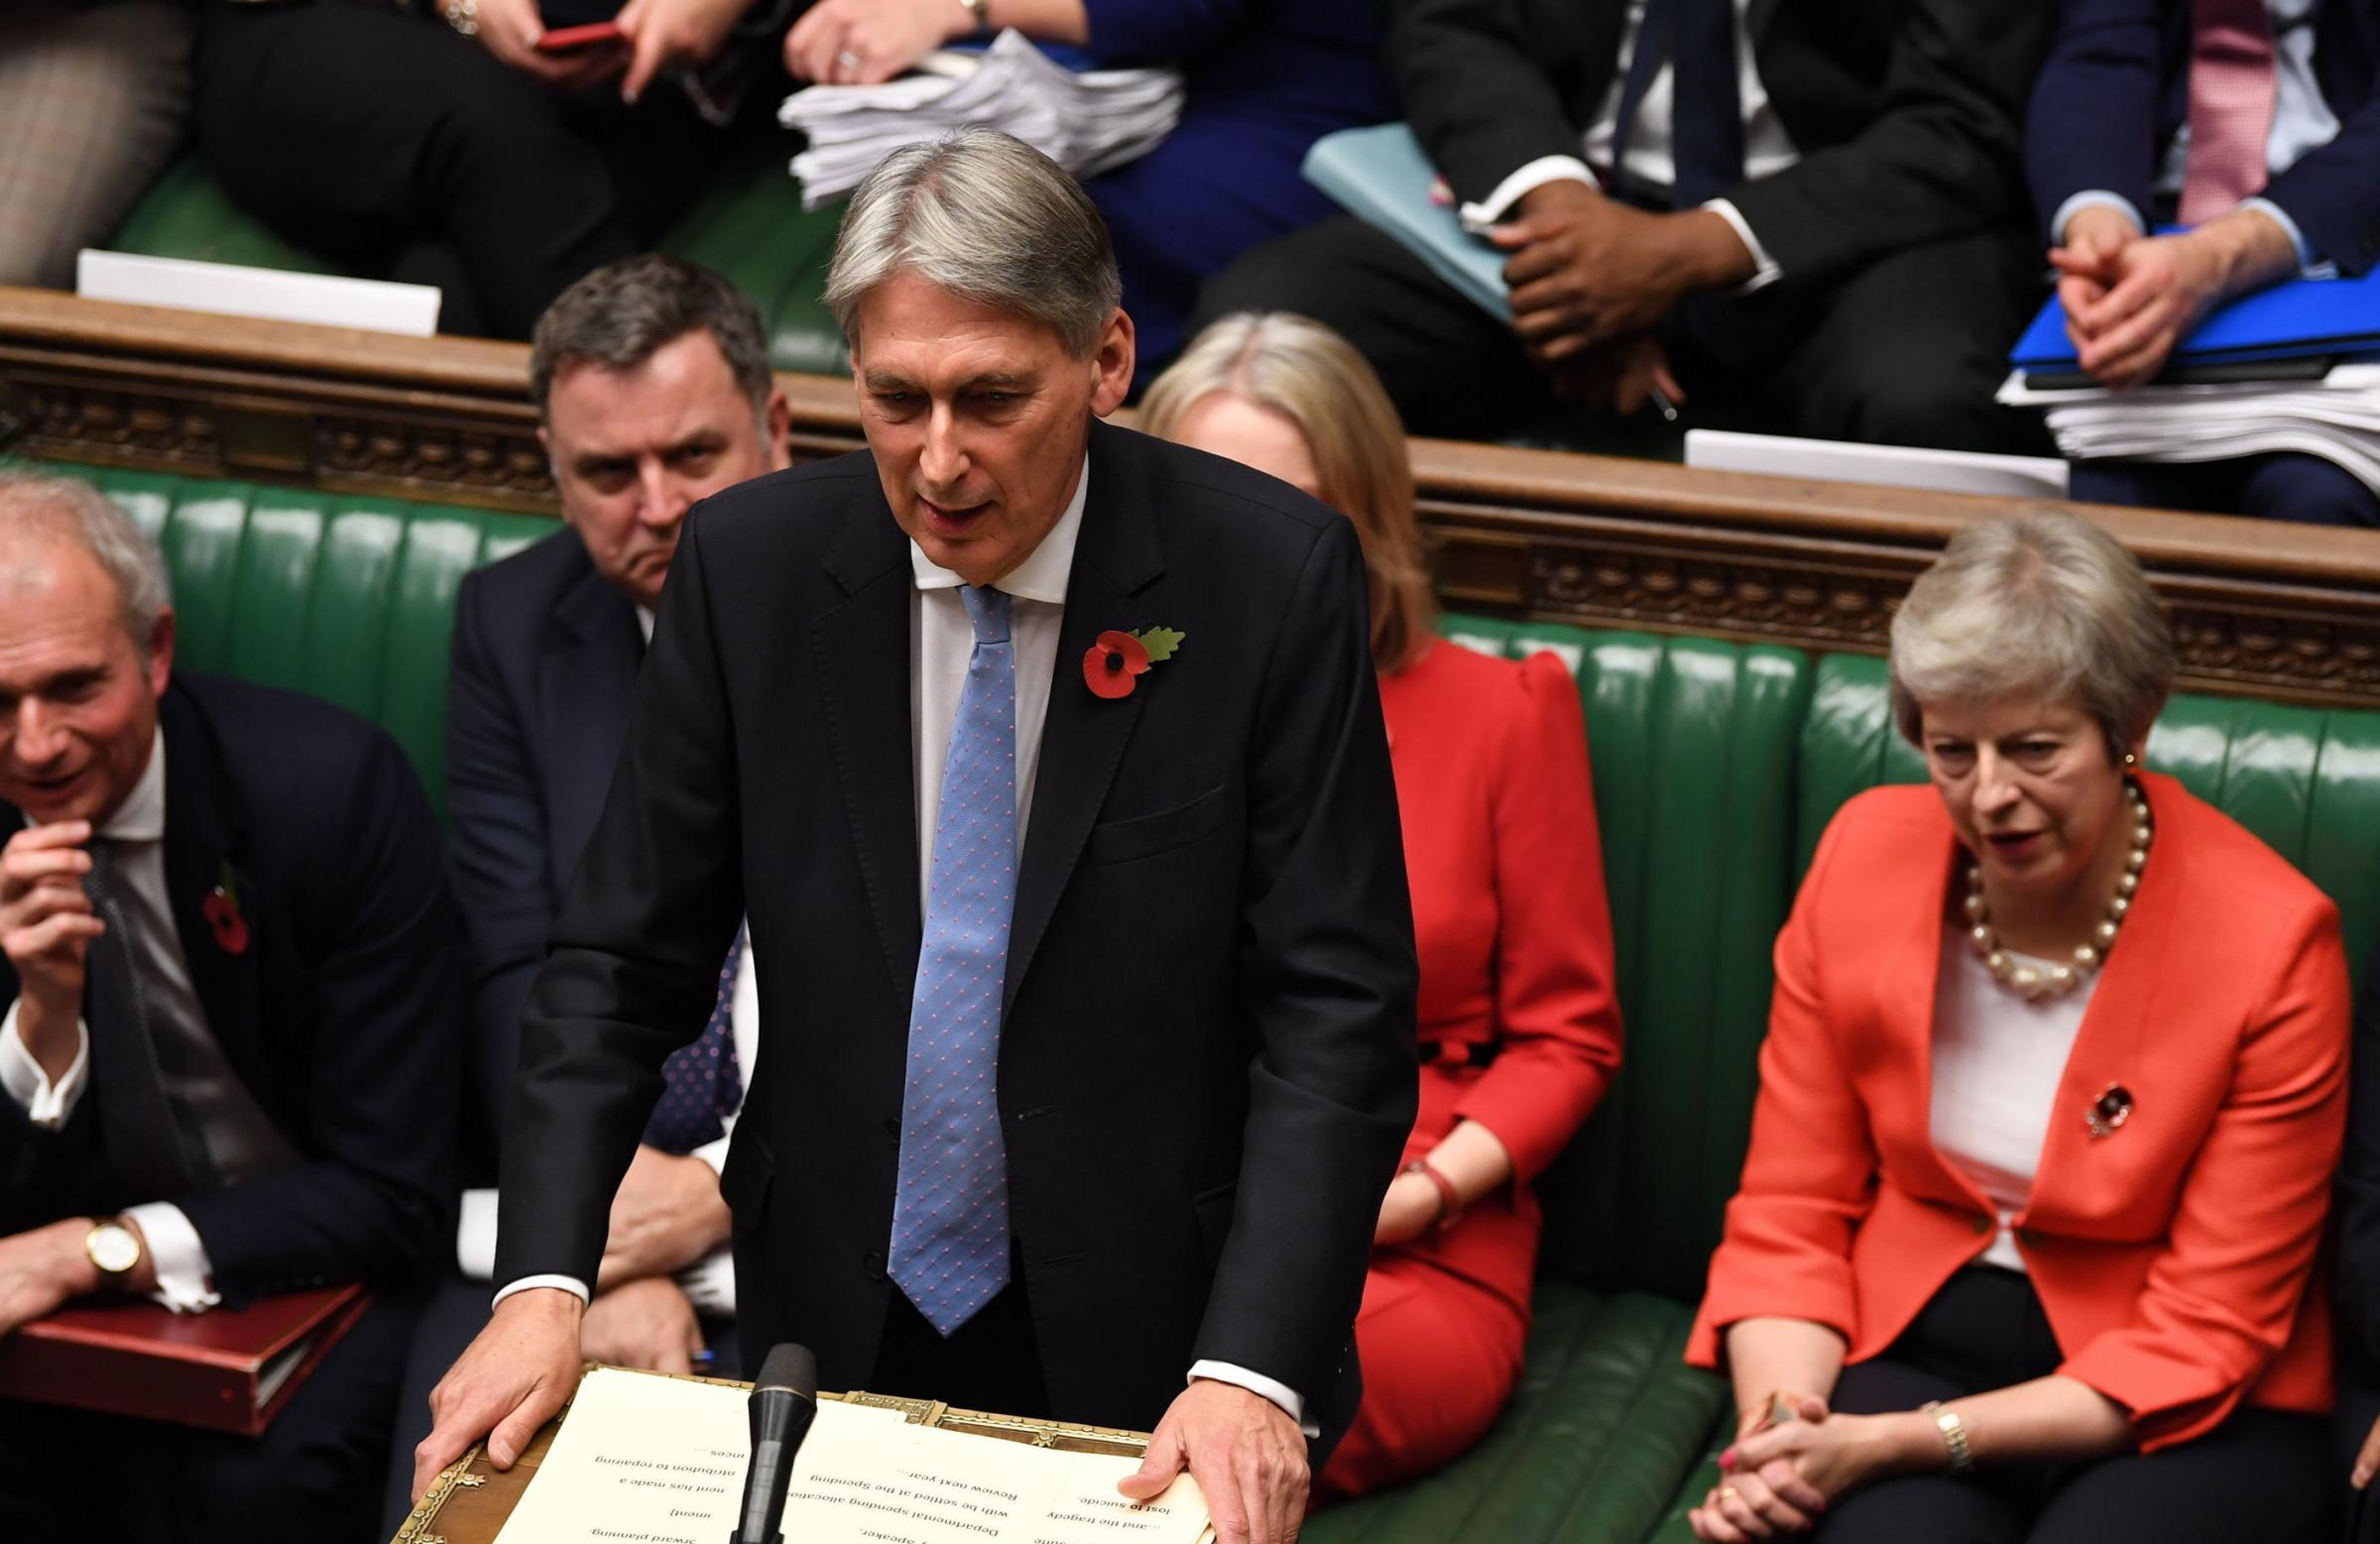 Chancellor Philip Hammond has come out of hiding for long enough to woo his party's core voters